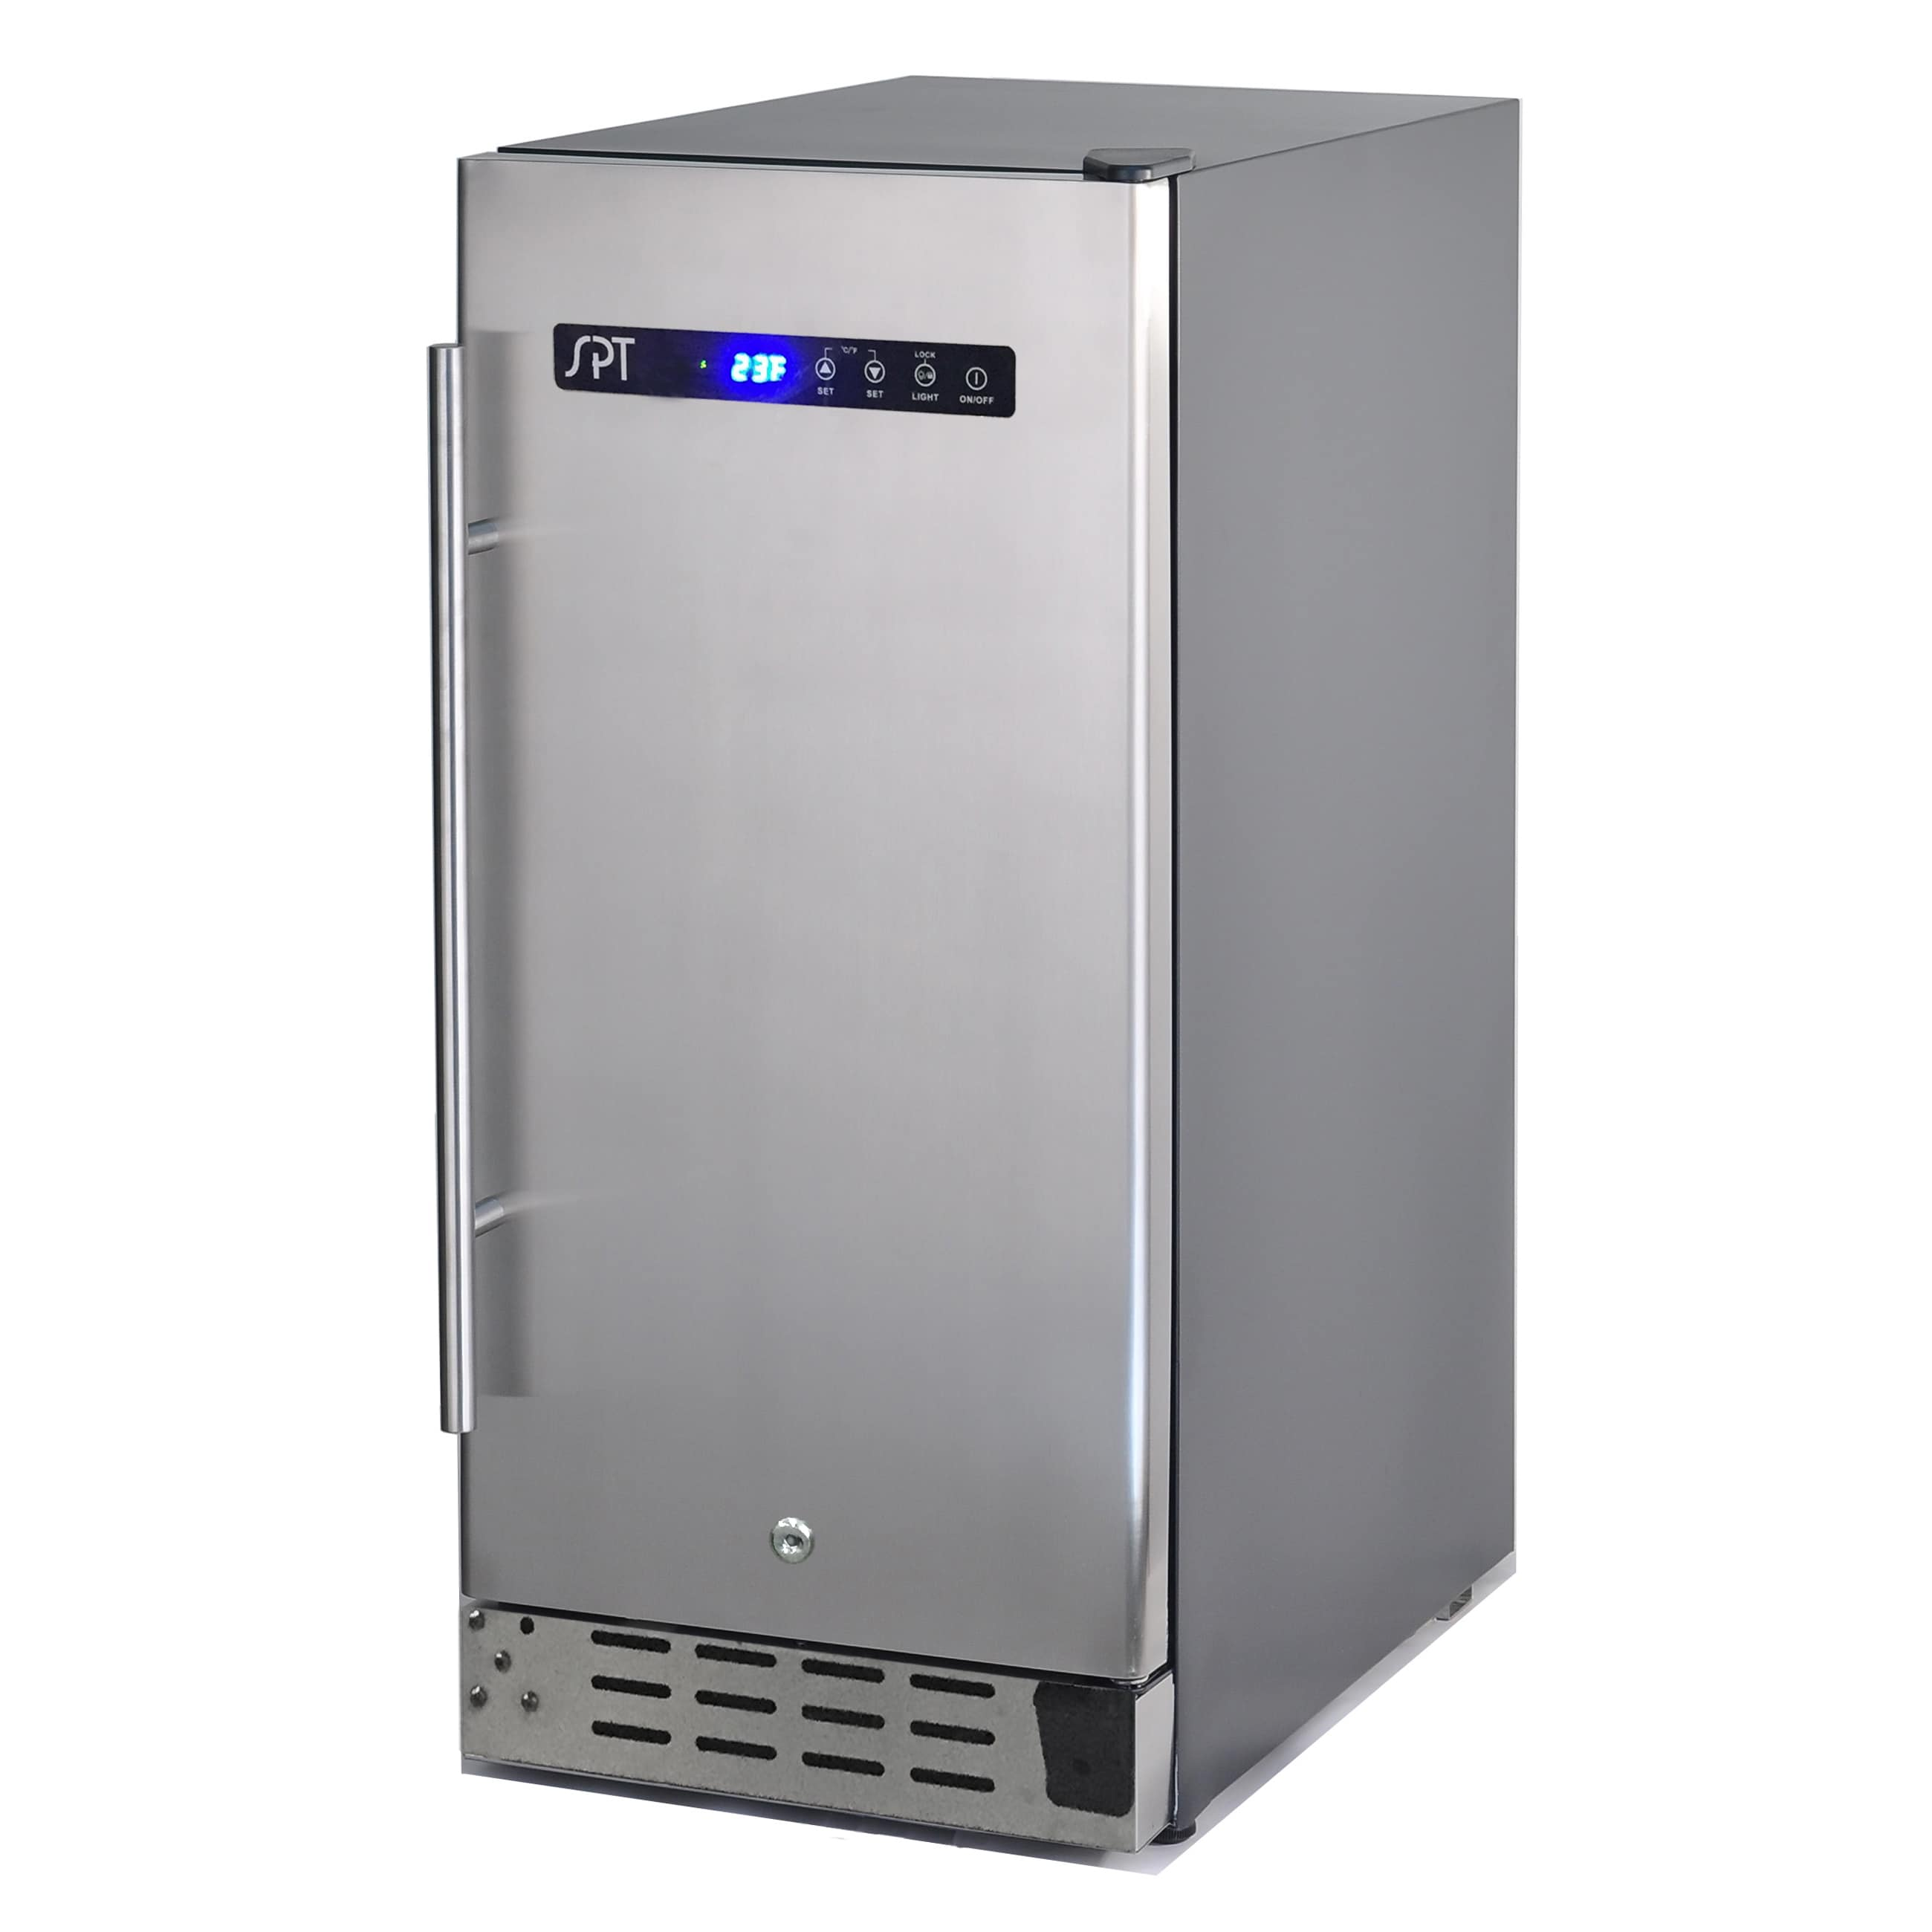 Small Freezer Canada Buy Refrigerators Online At Overstock Our Best Large Appliances